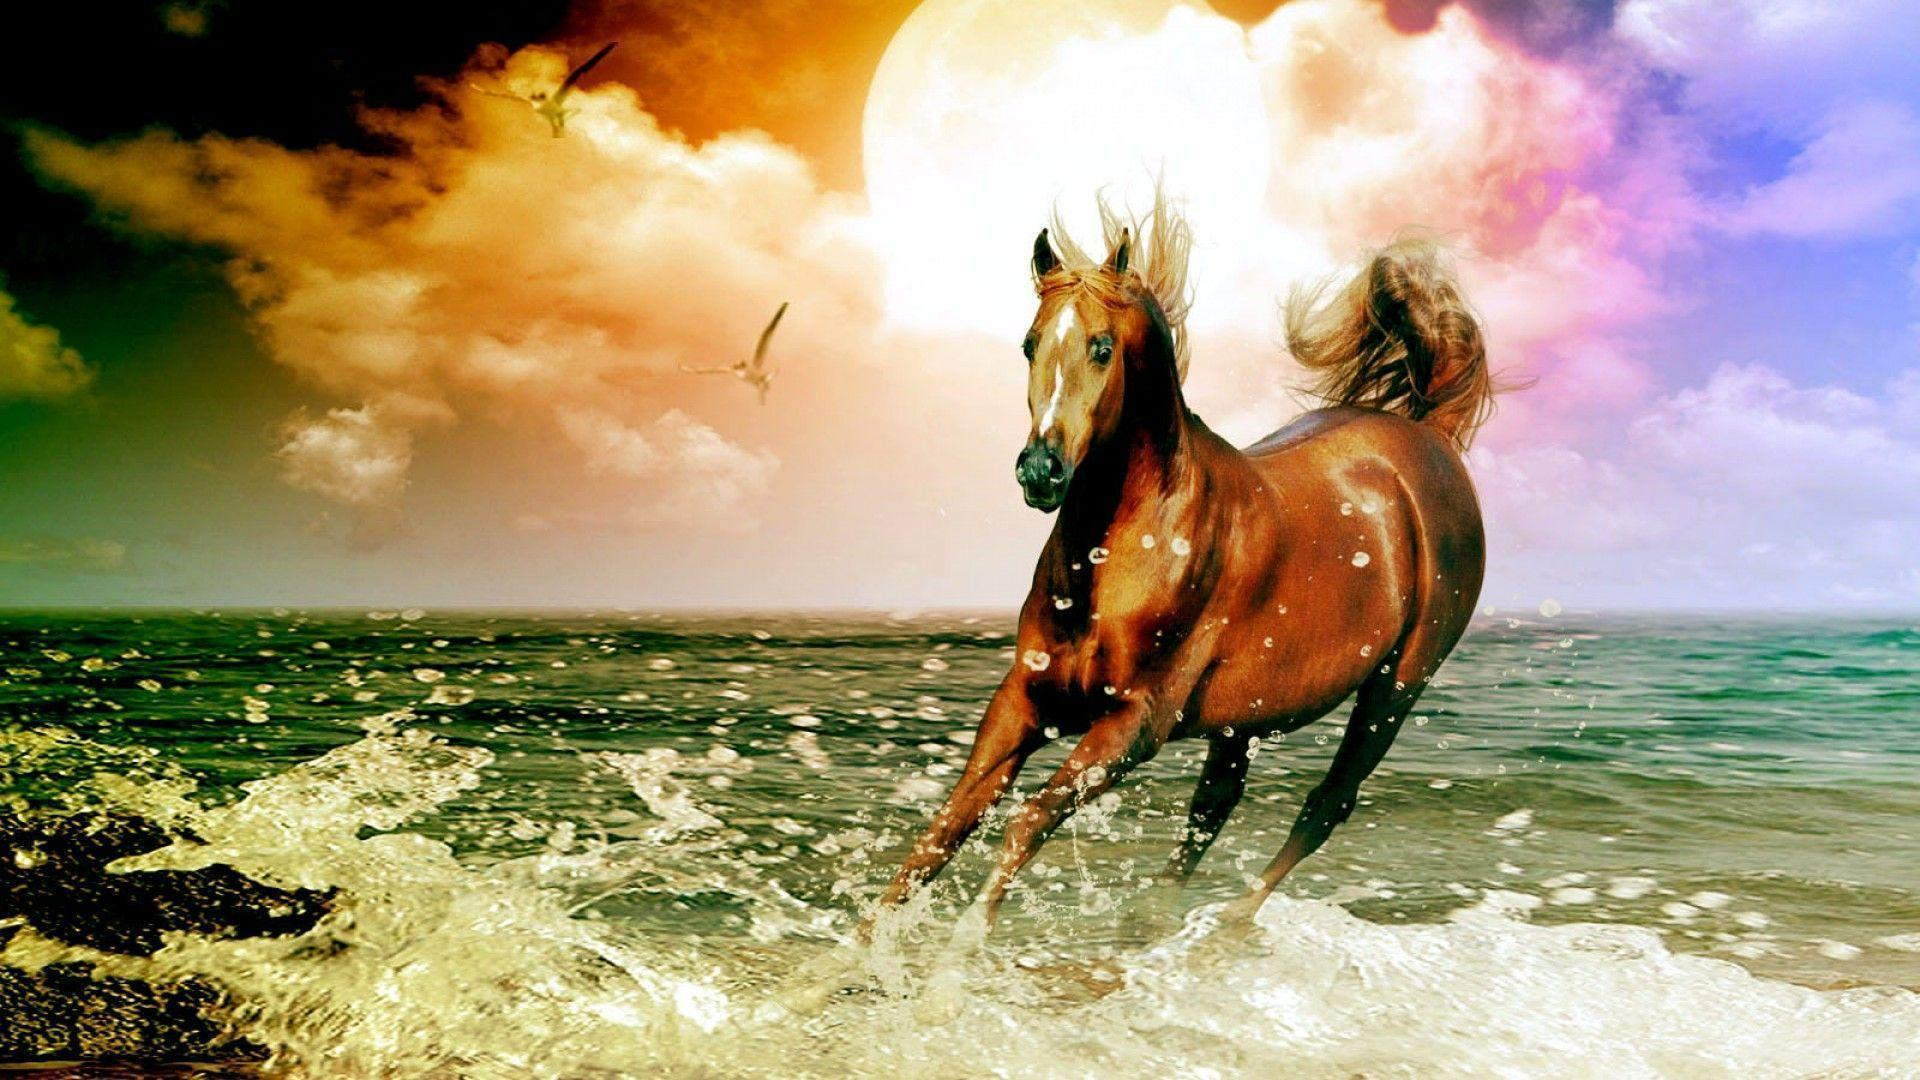 horse wallpapers for laptop - photo #48